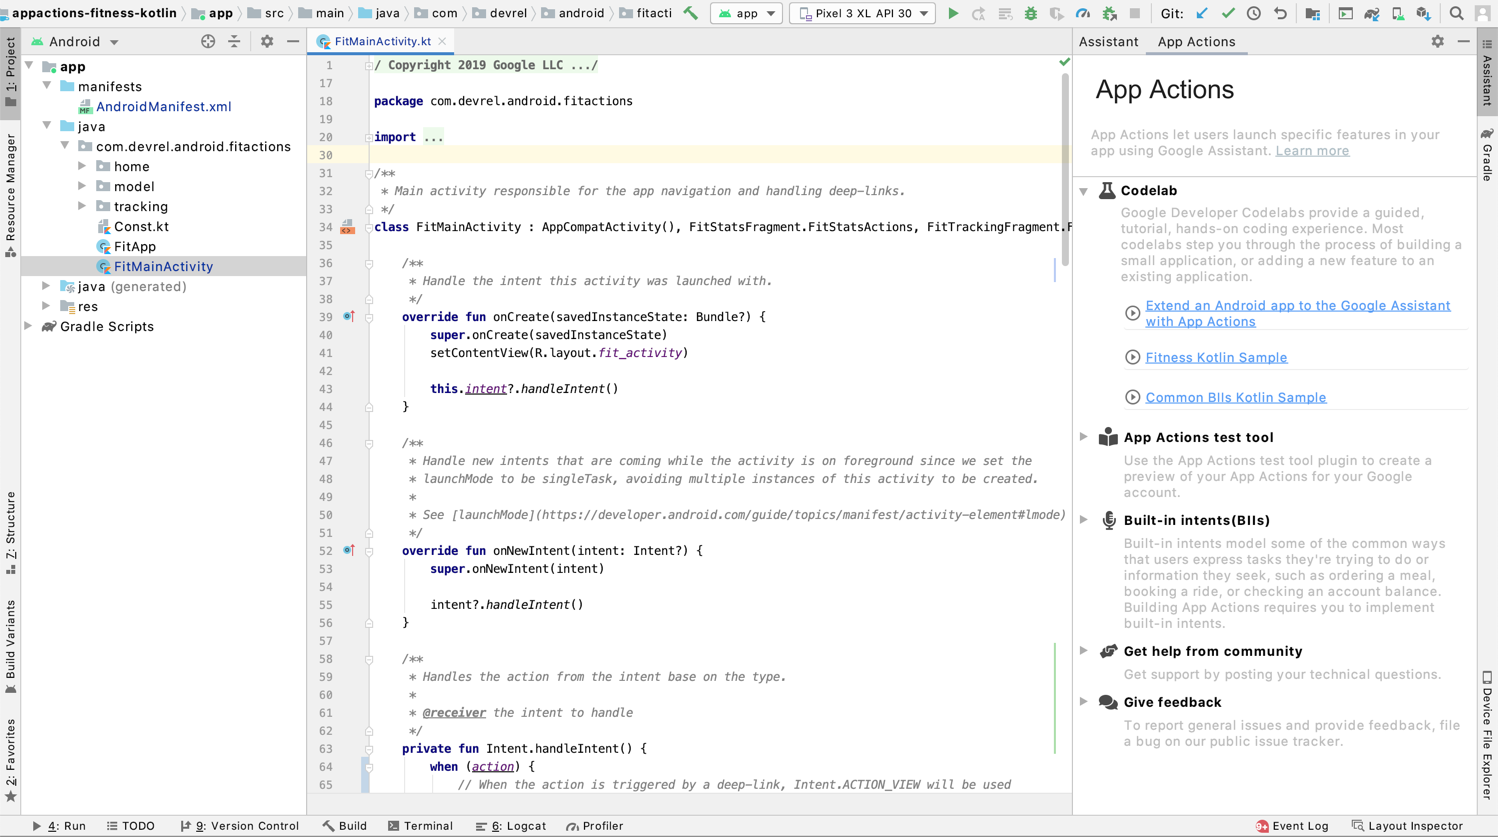 App Actions test tool assistant